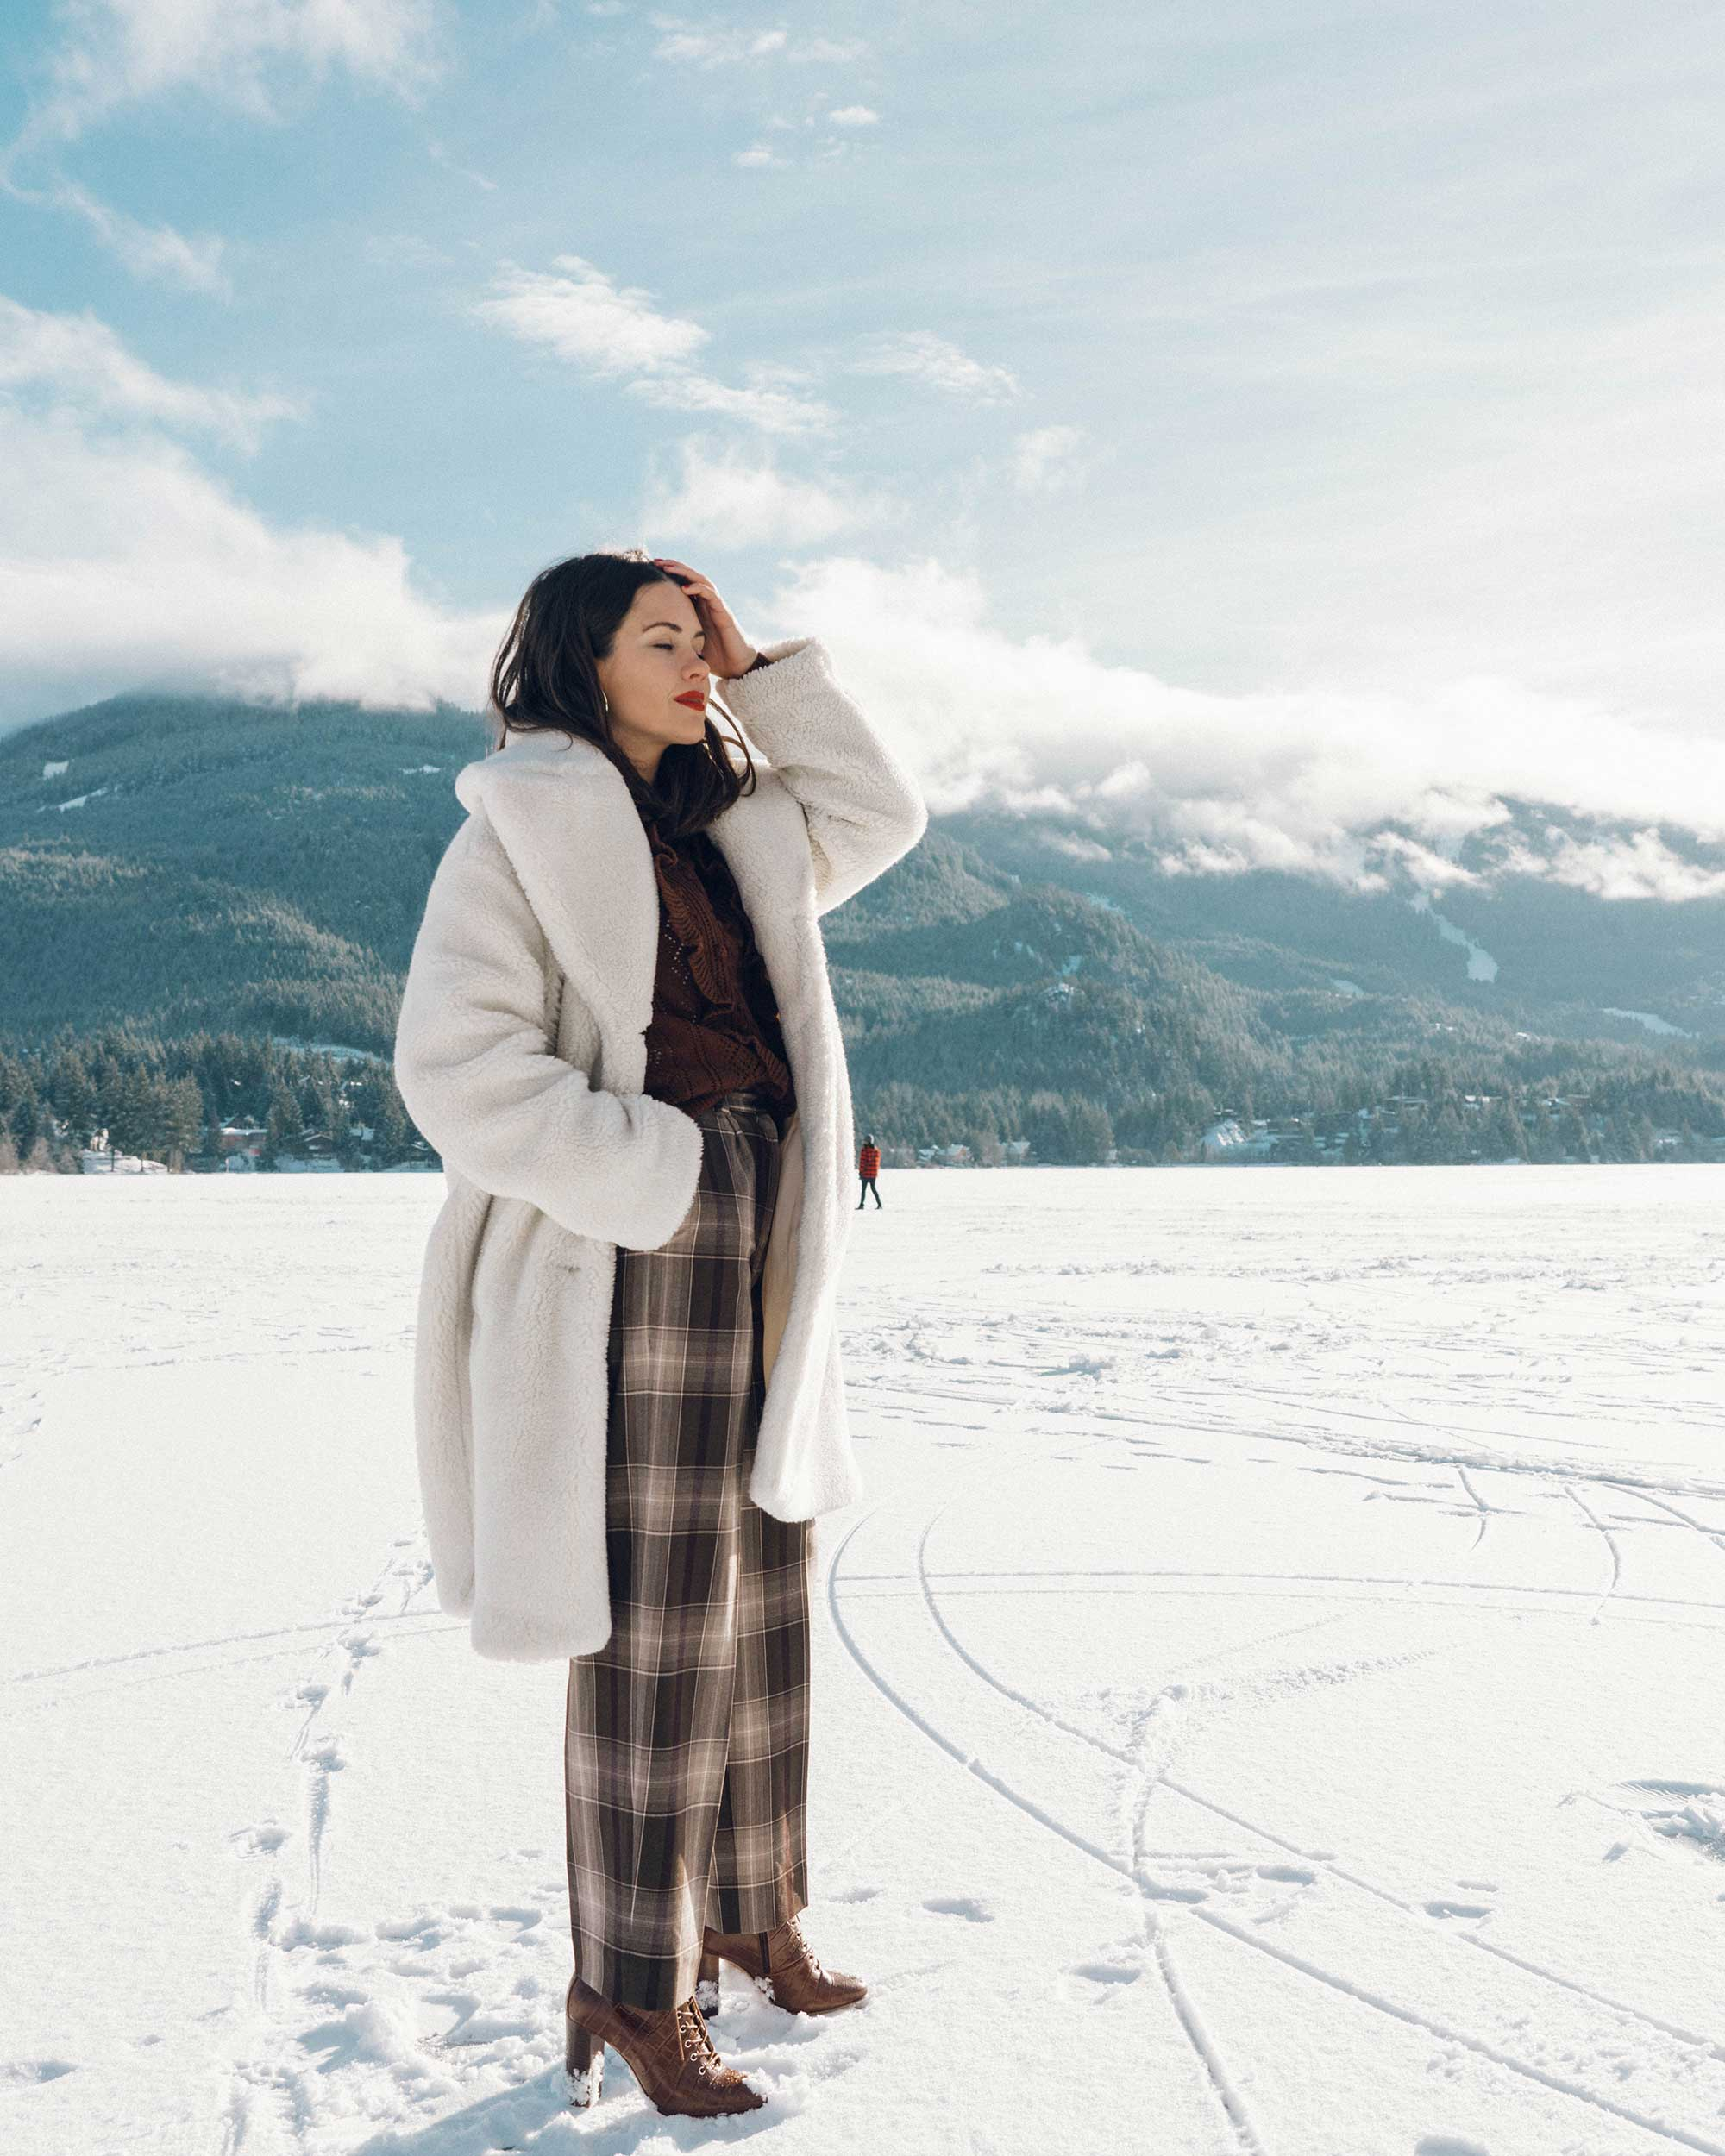 & Other Stories Tailored Brown Plaid Pants with pleats, white Faux Shearling Coat,  winter snow outfit, whistler canada5.jpg